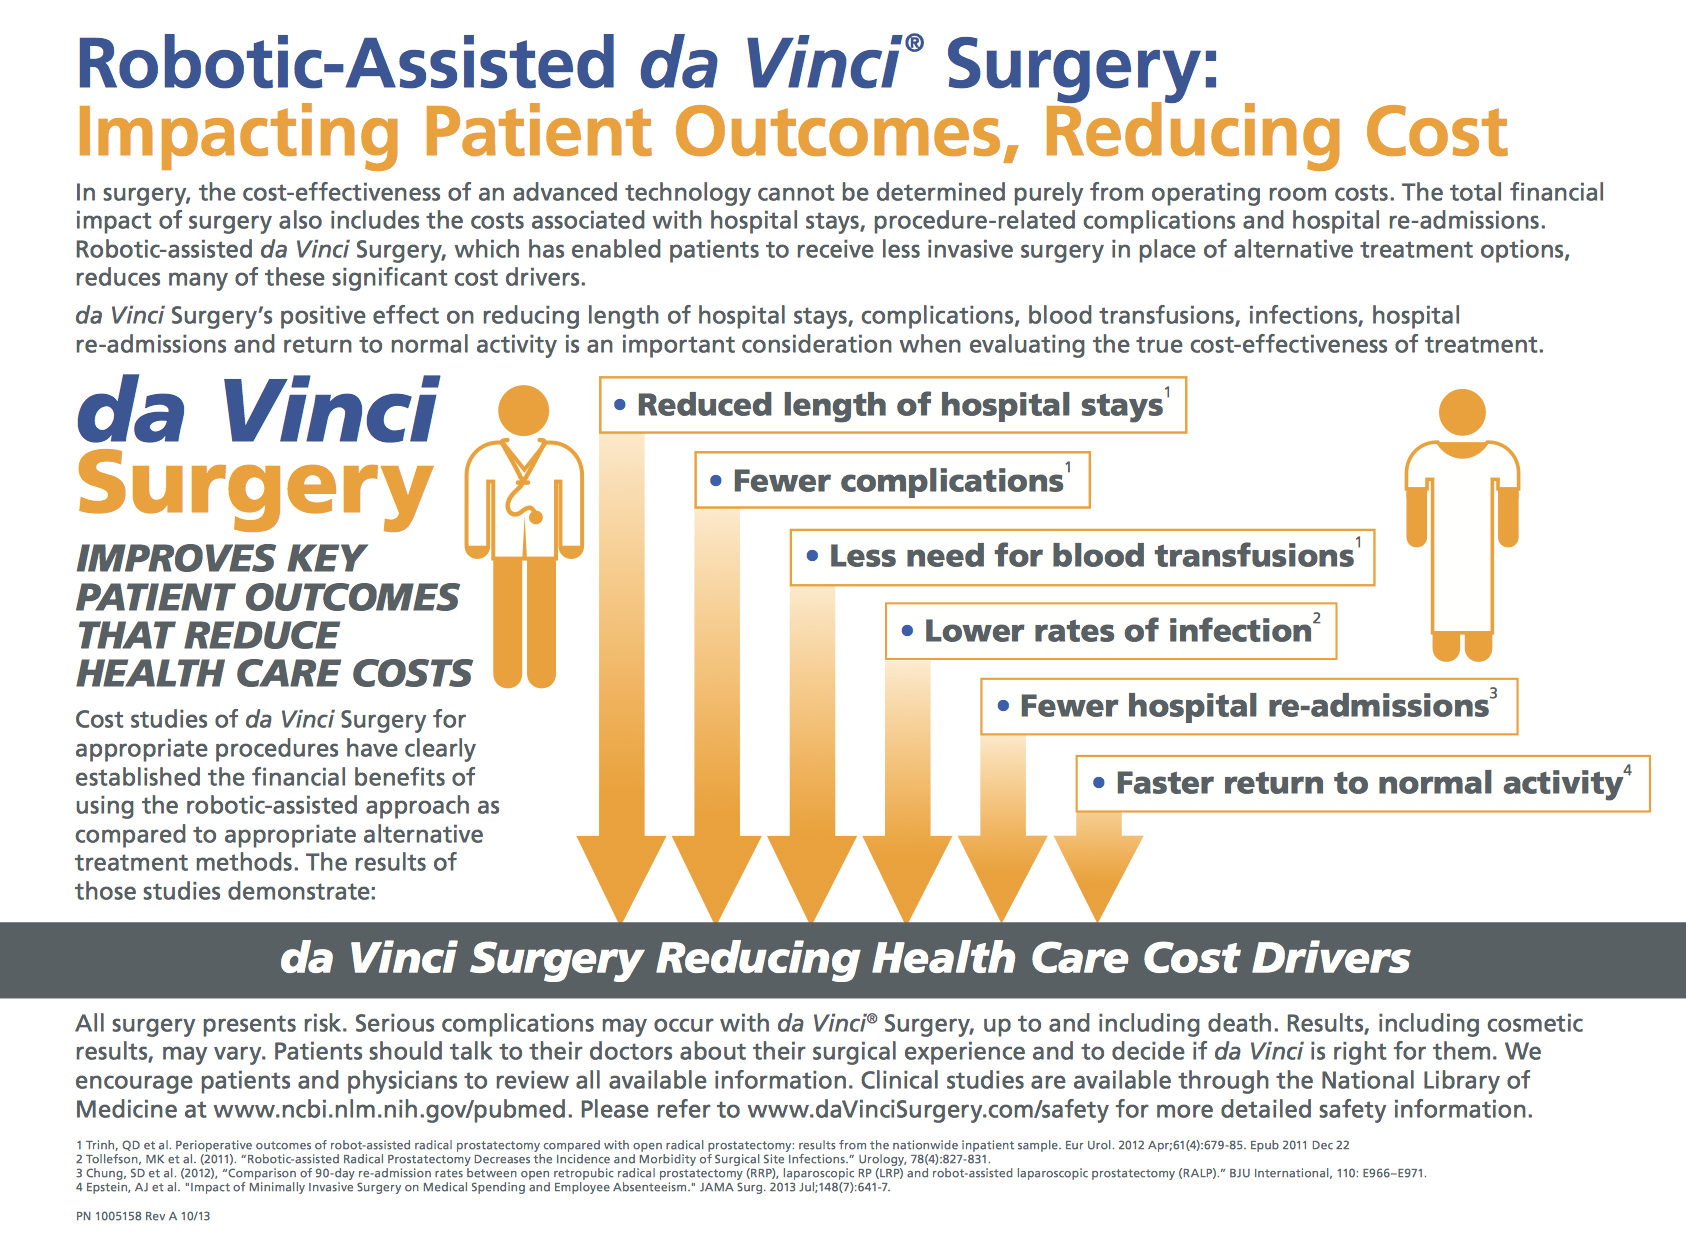 cost-effectiveness-of-robotic-surgery